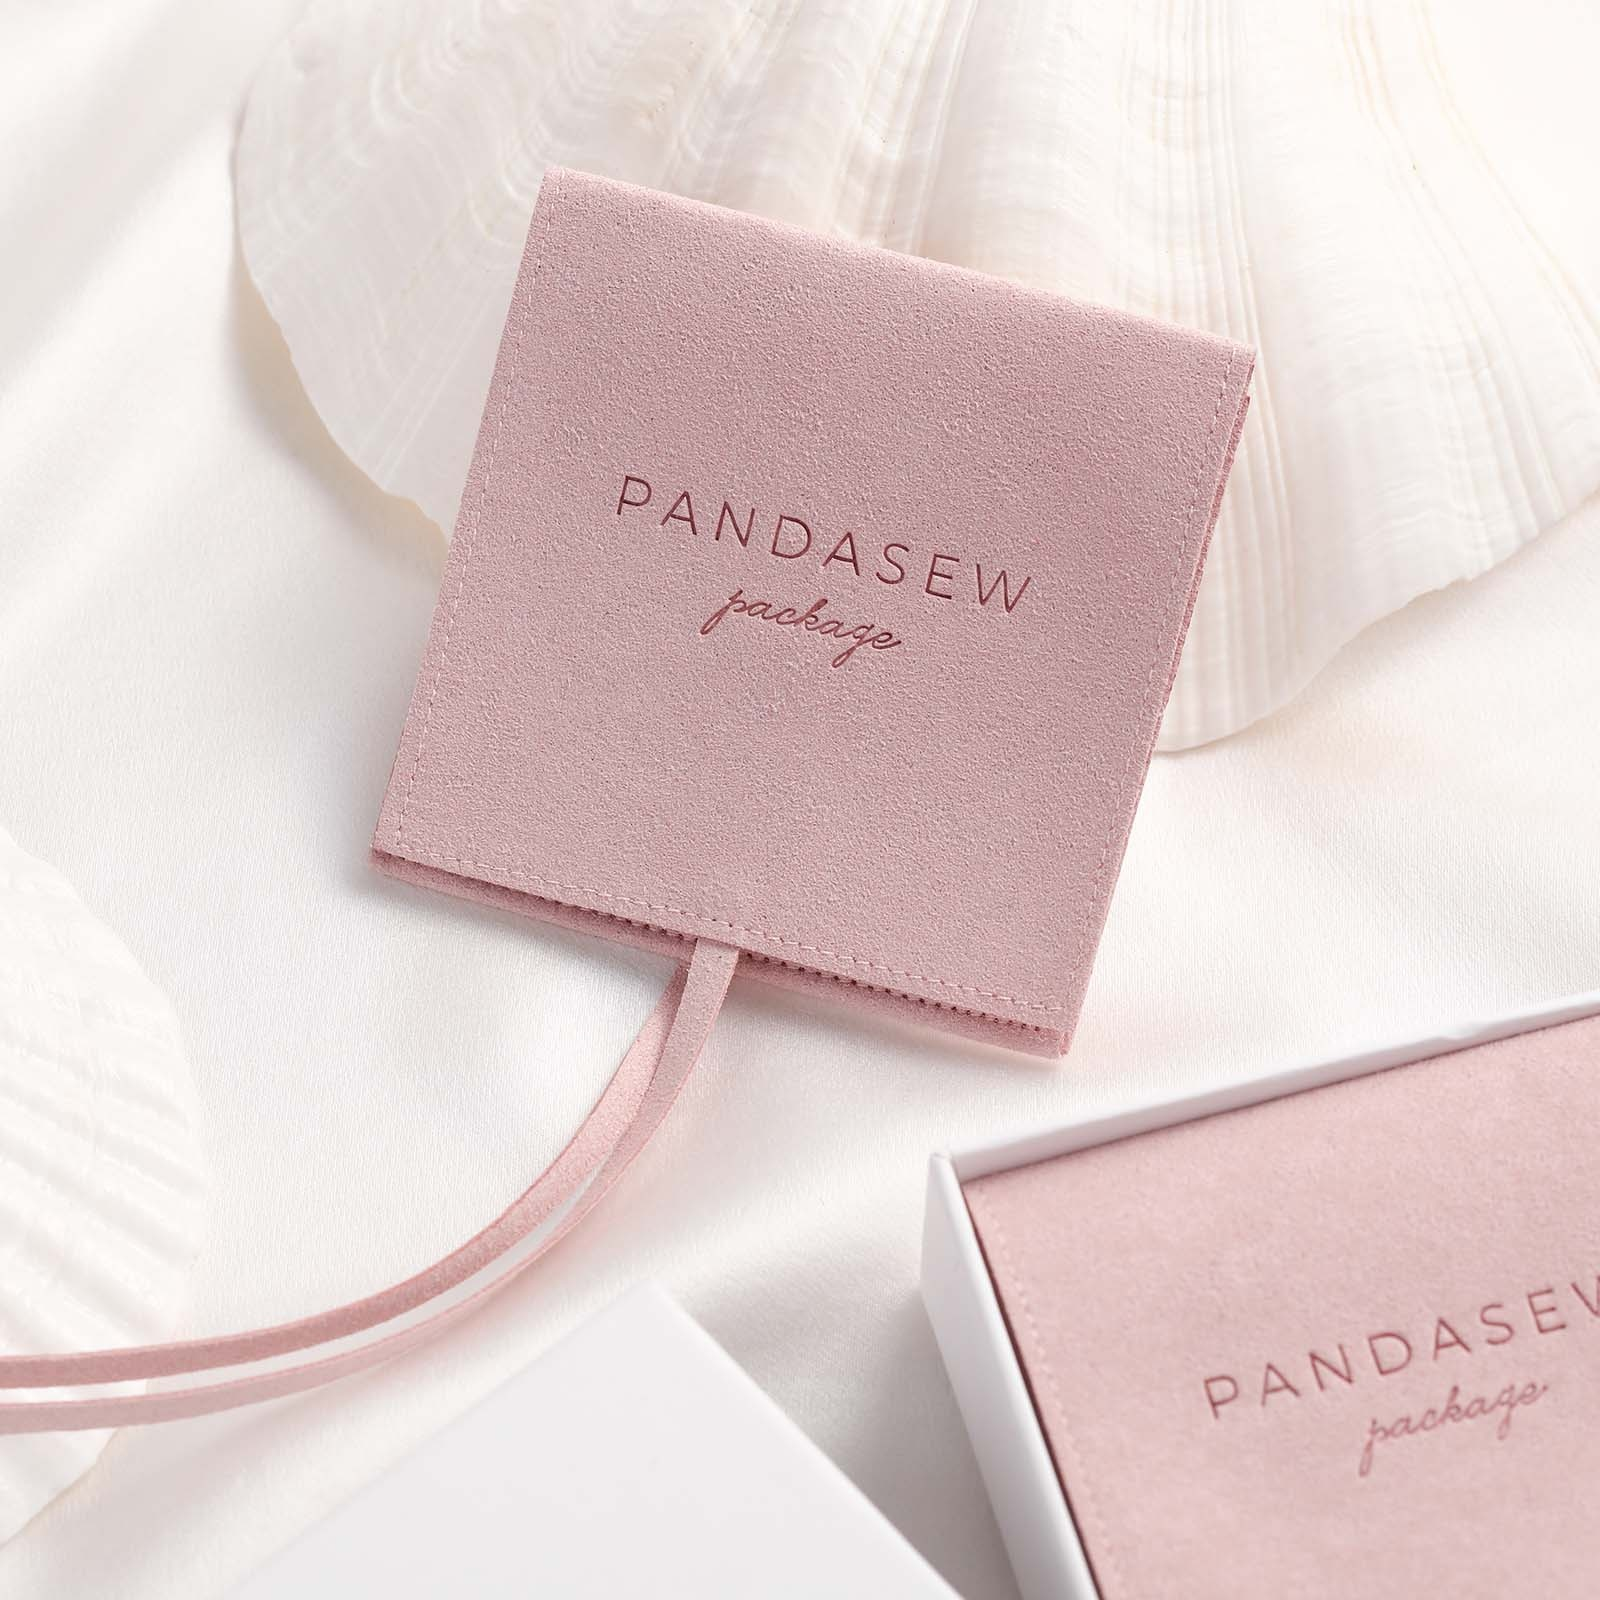 PandaSew 8x8cm Pink Custom Logo Suede Microfiber Jewelry Gift Packaging Pouch, Customized color